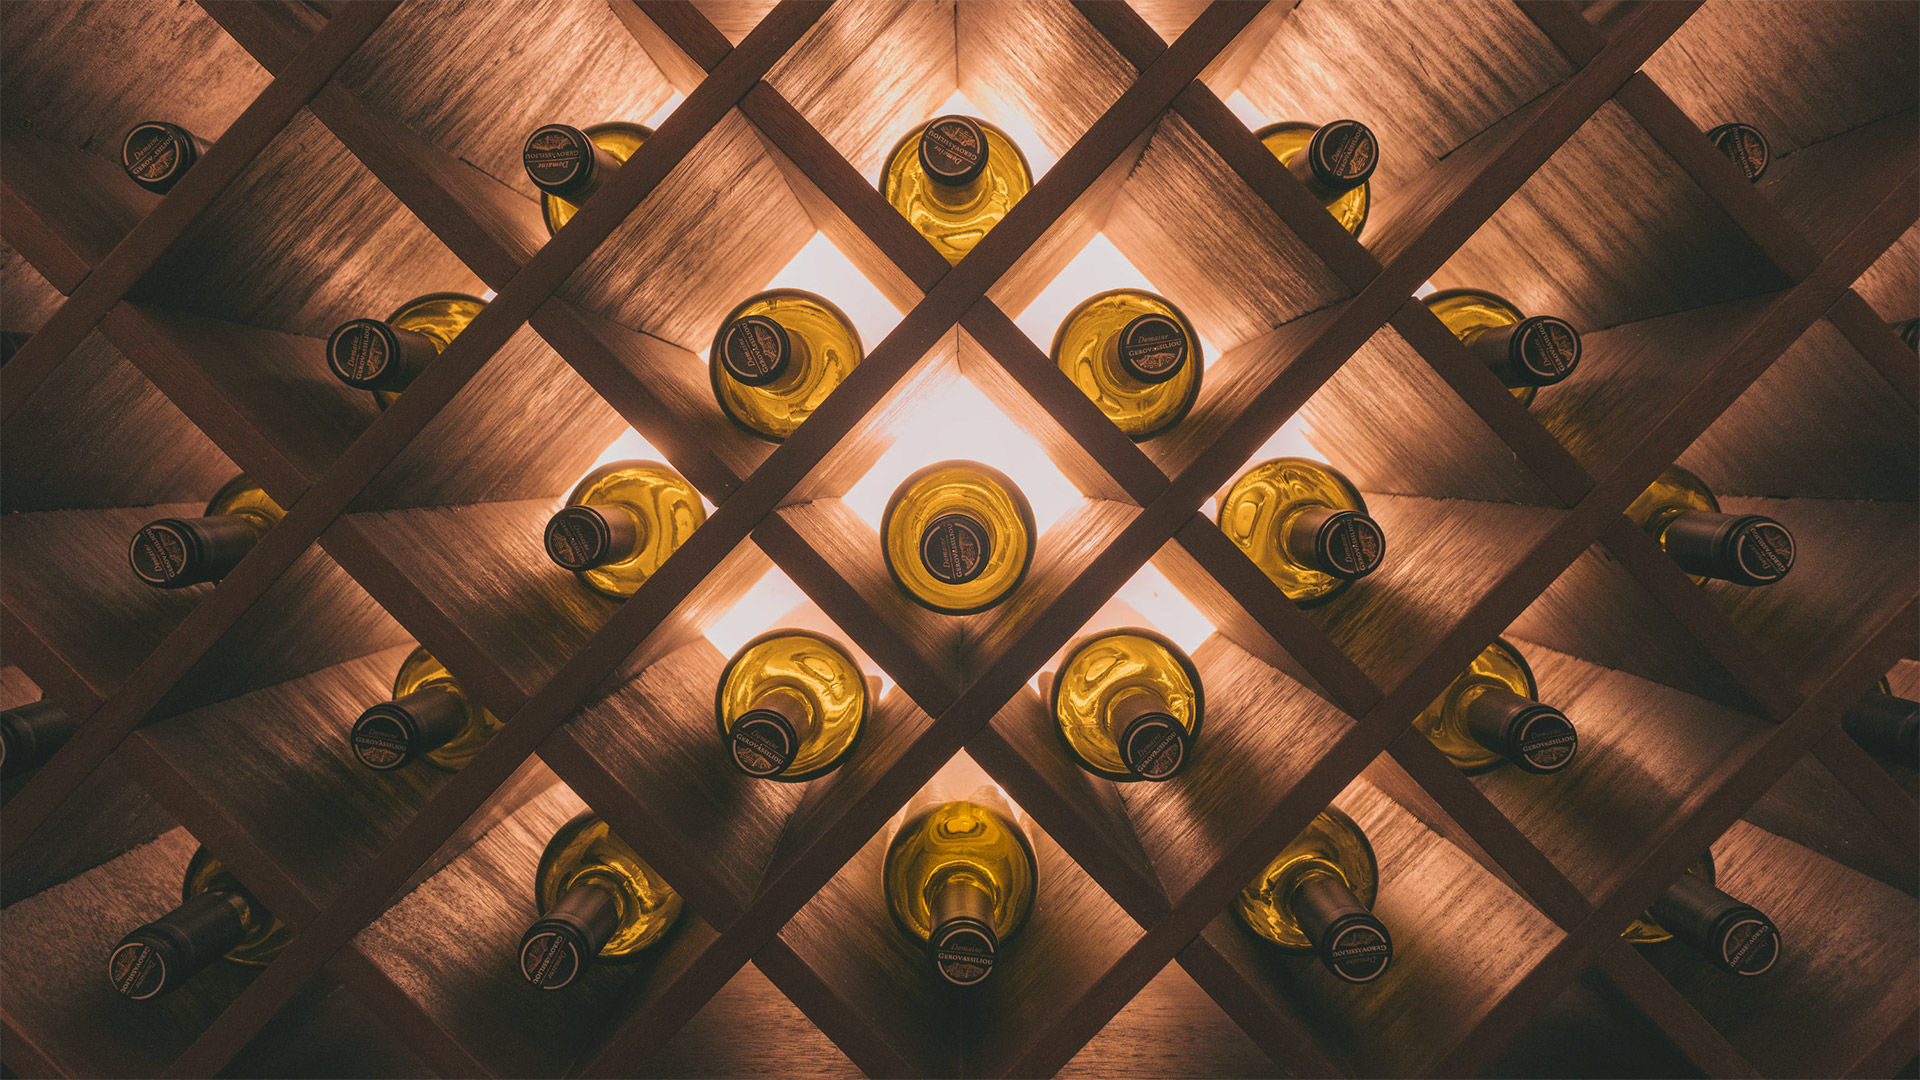 The mystery behind discovering a wine cellar